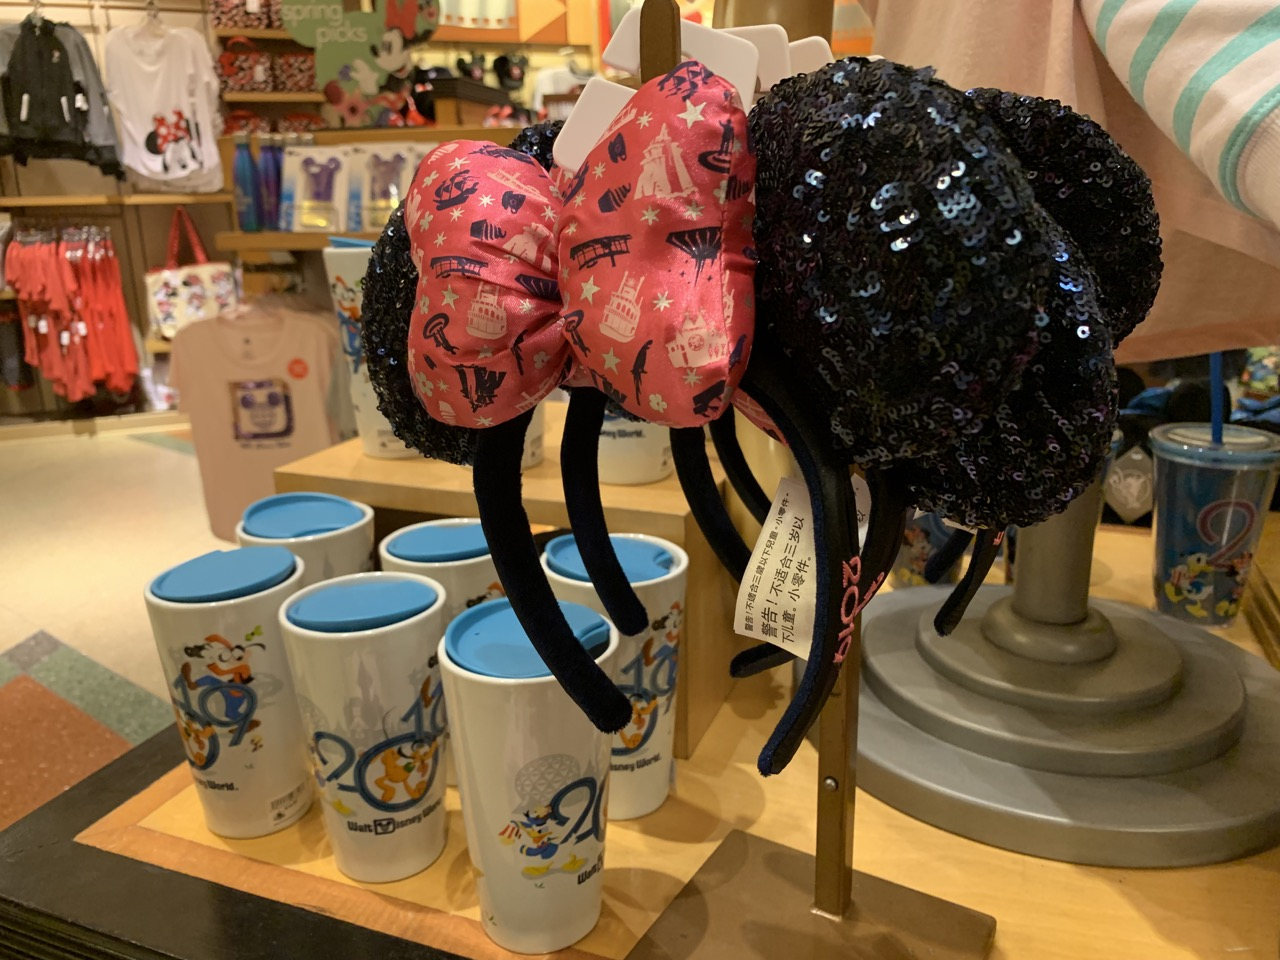 disney world trip report early summer 2019 day two merchandise 15.jpeg